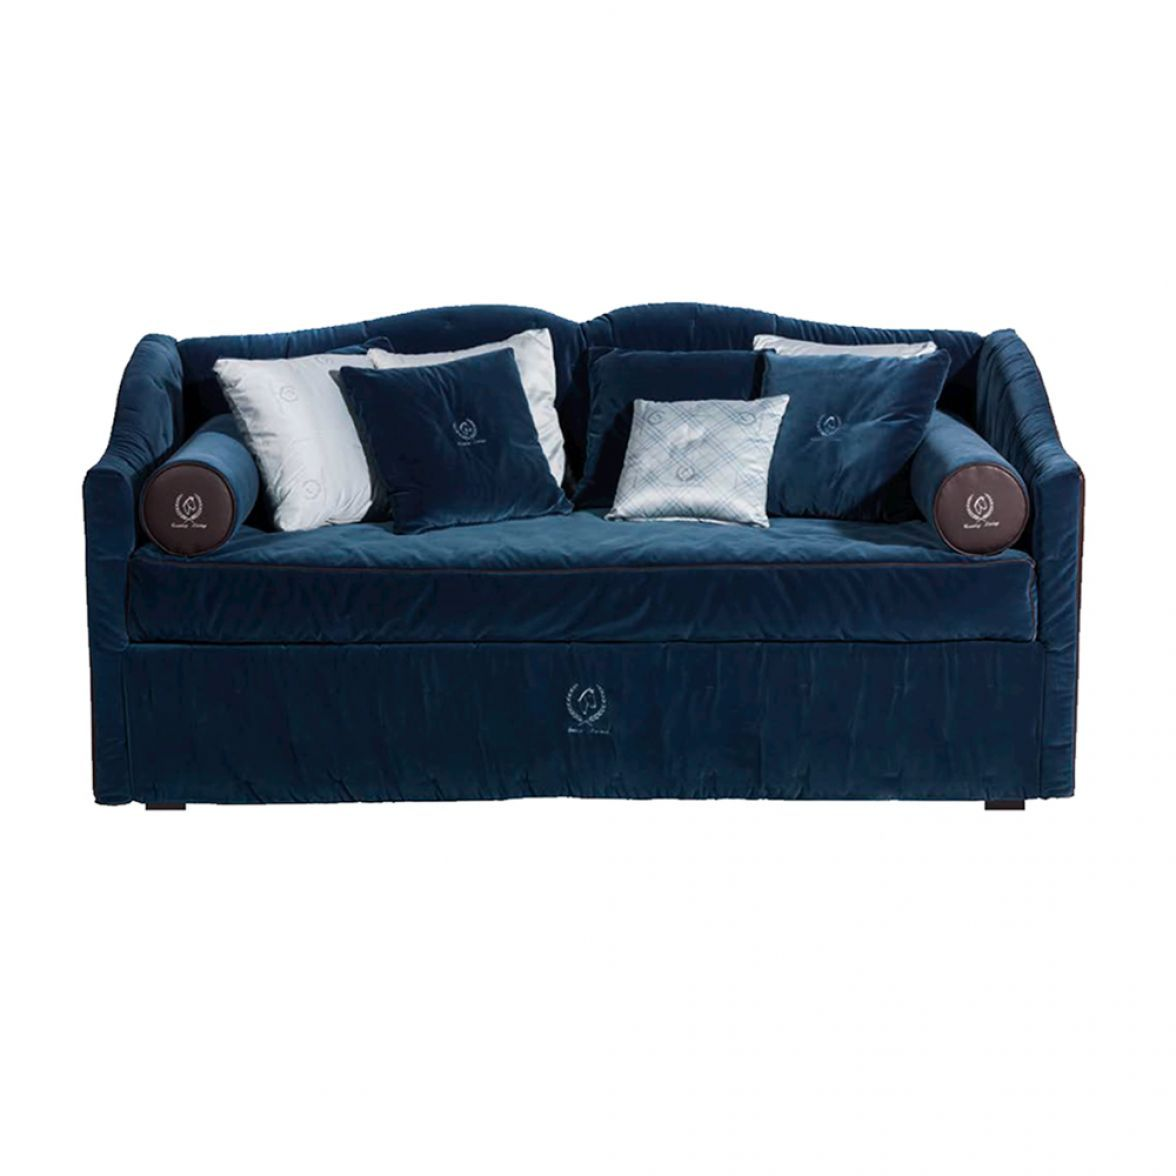 Luxury country living sofa-bed